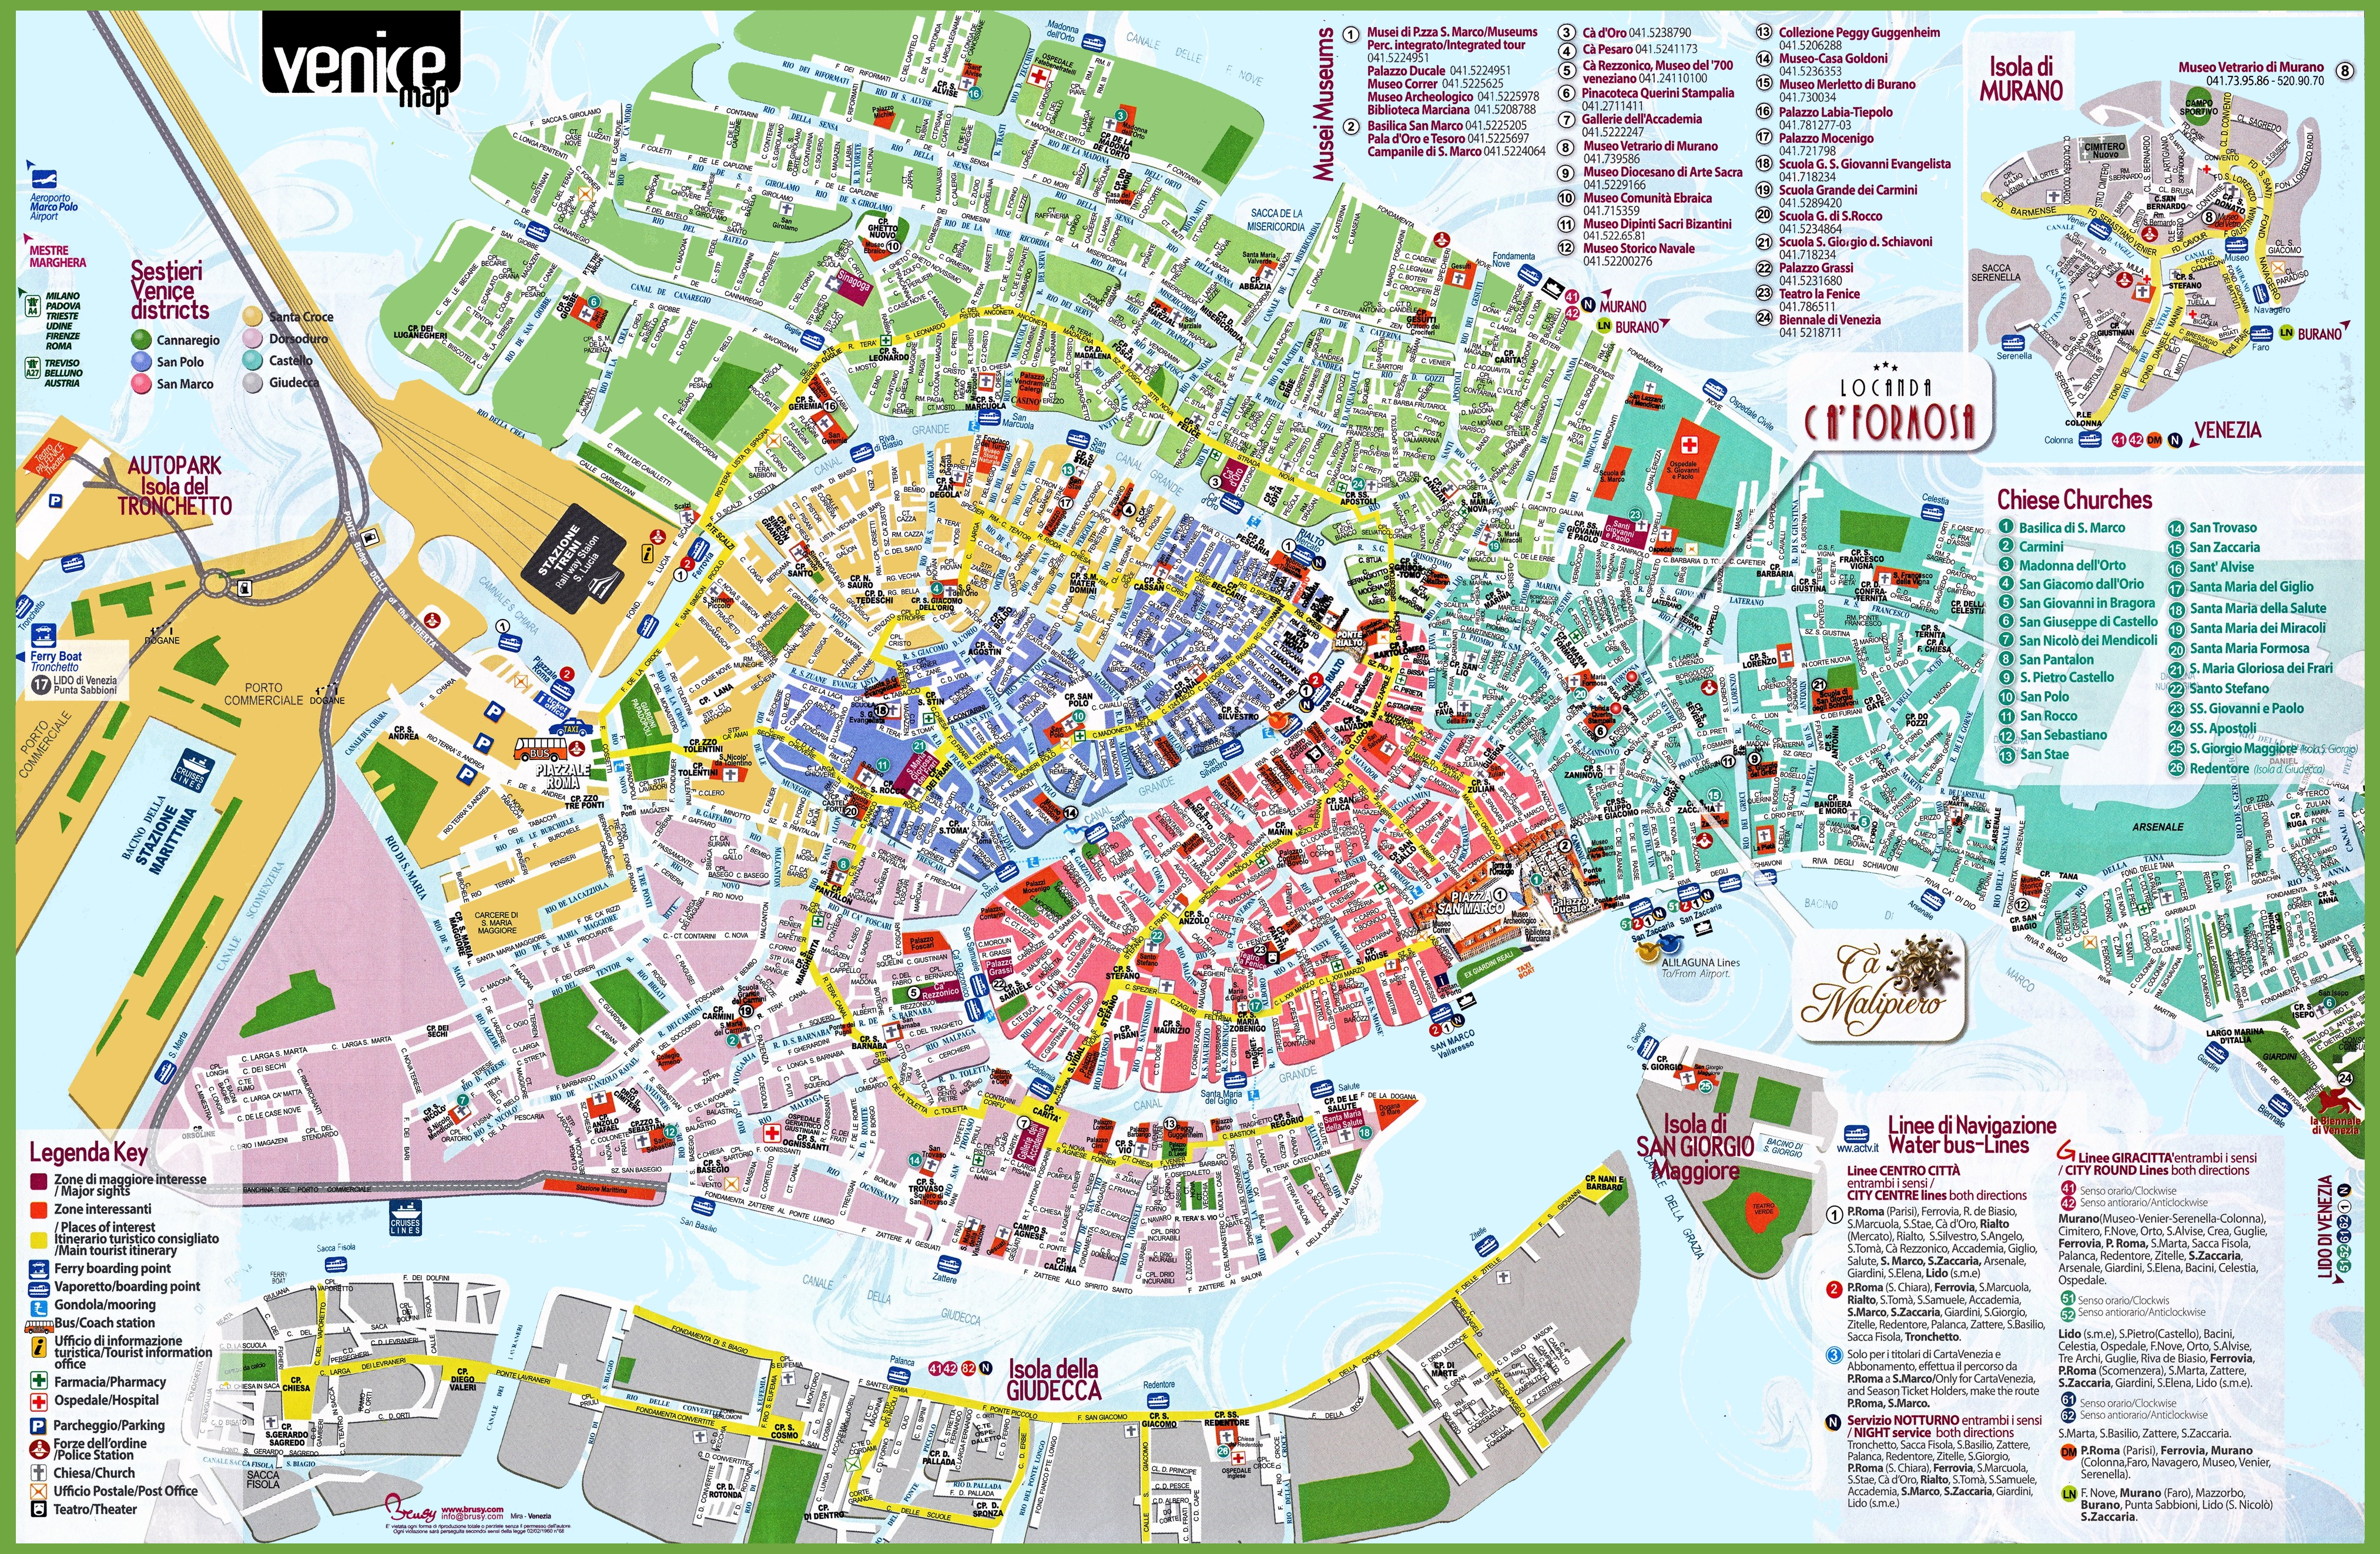 venice-tourist-attractions-map